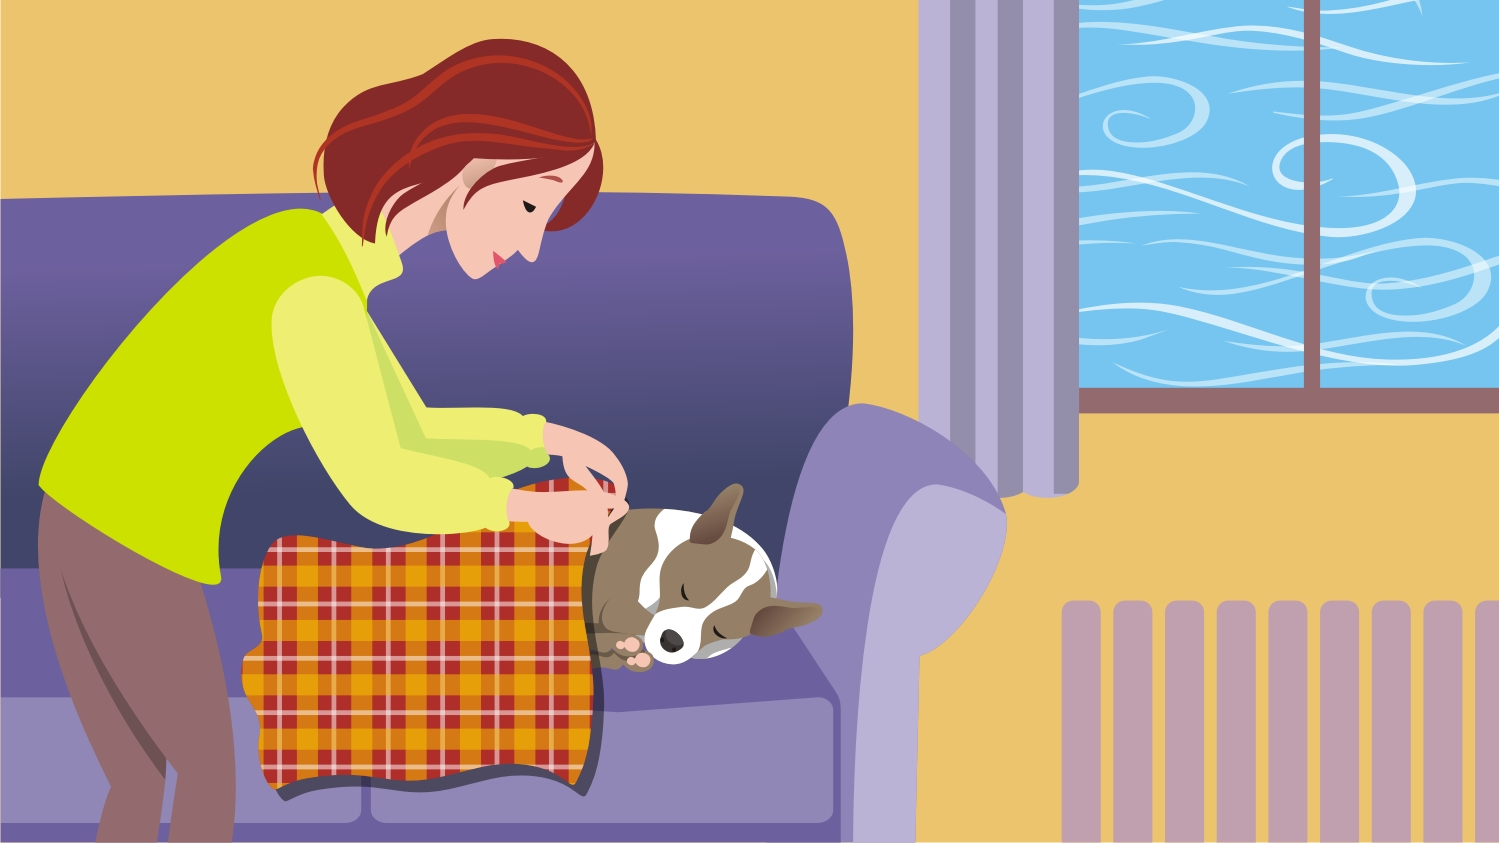 Chill clipart extreme cold Pets Illustration Harsh 04 Winter